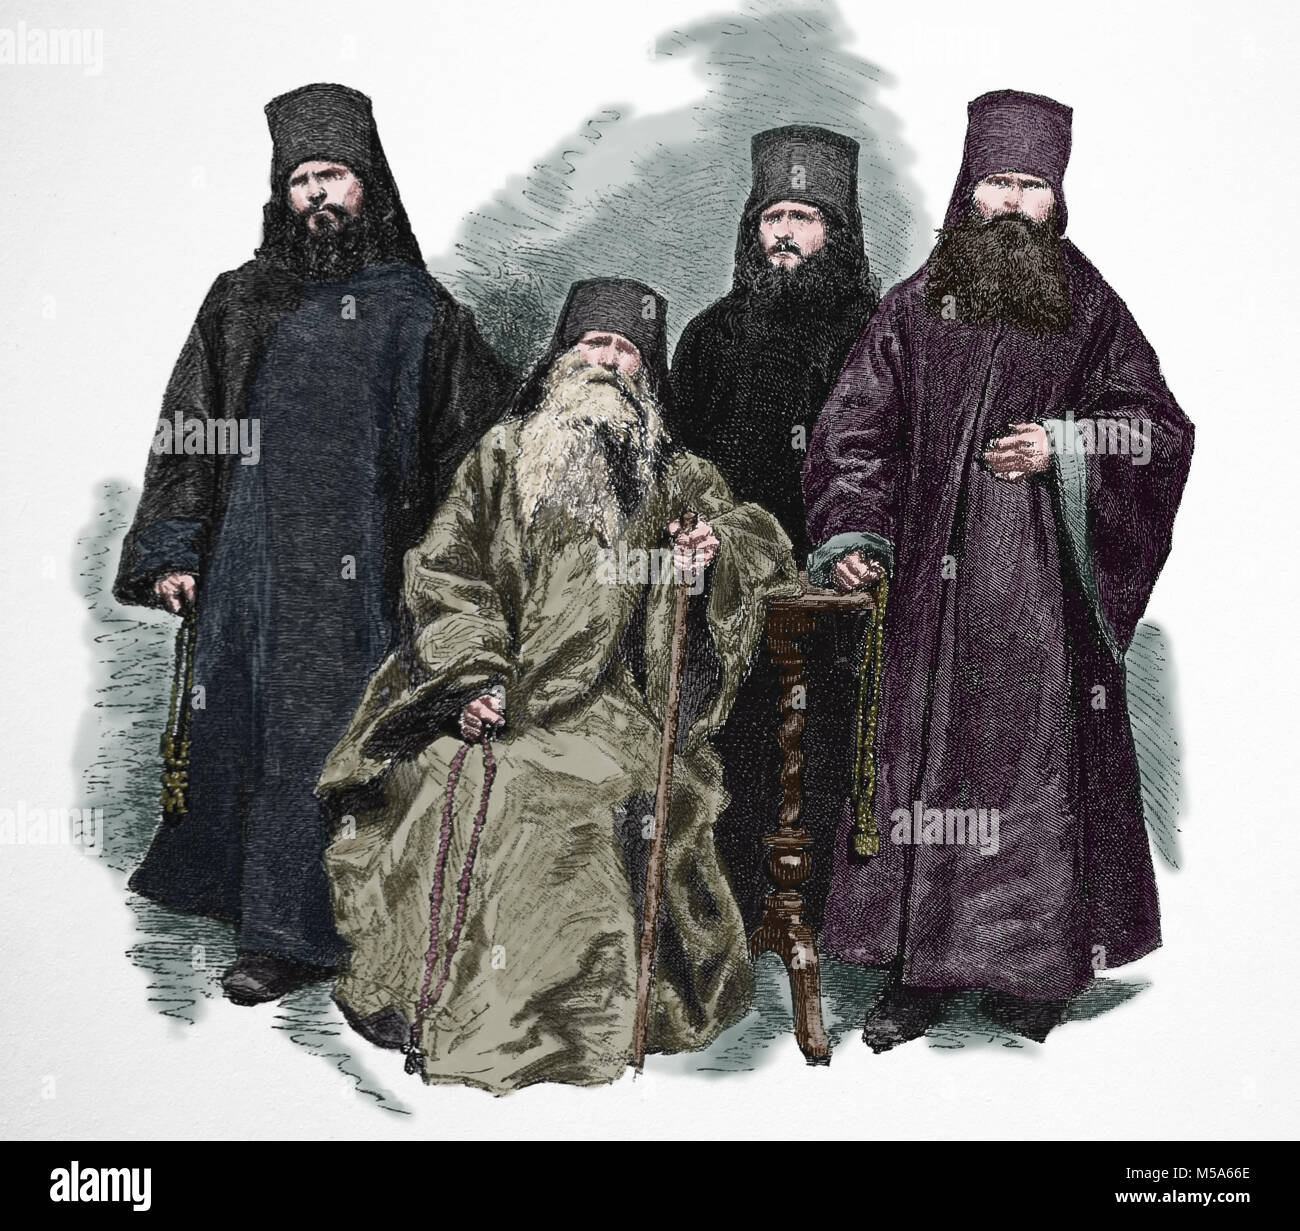 Eastern Orthodox Church. Russian Orthodox clerics and Monks. 1870. Engraving. - Stock Image